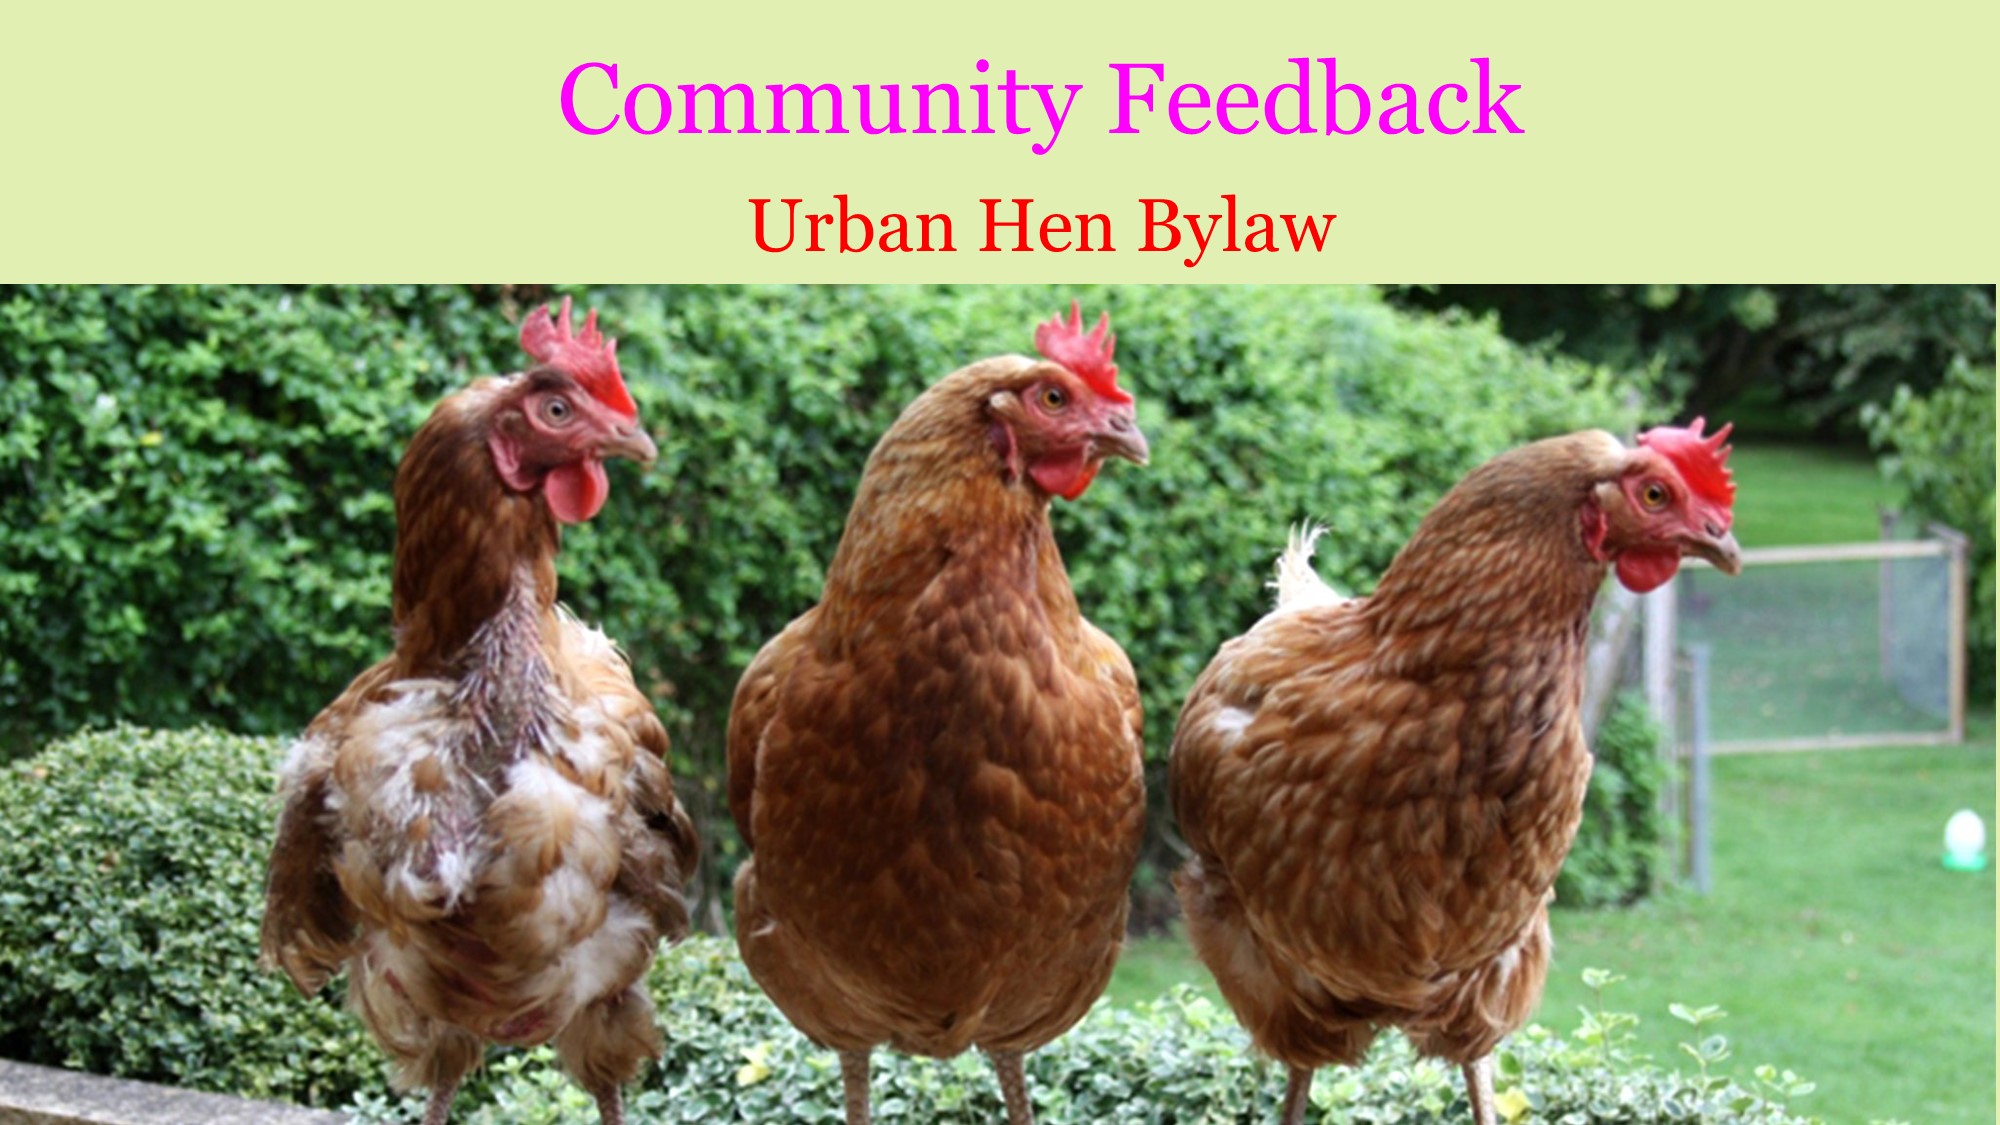 <div id=slideshow_title>Urban Hen Bylaw</div> <br>Town Council is asking for Community Feedback on the proposed Urban Hen Bylaw. Email admin@picturebutte.ca by May 14th.